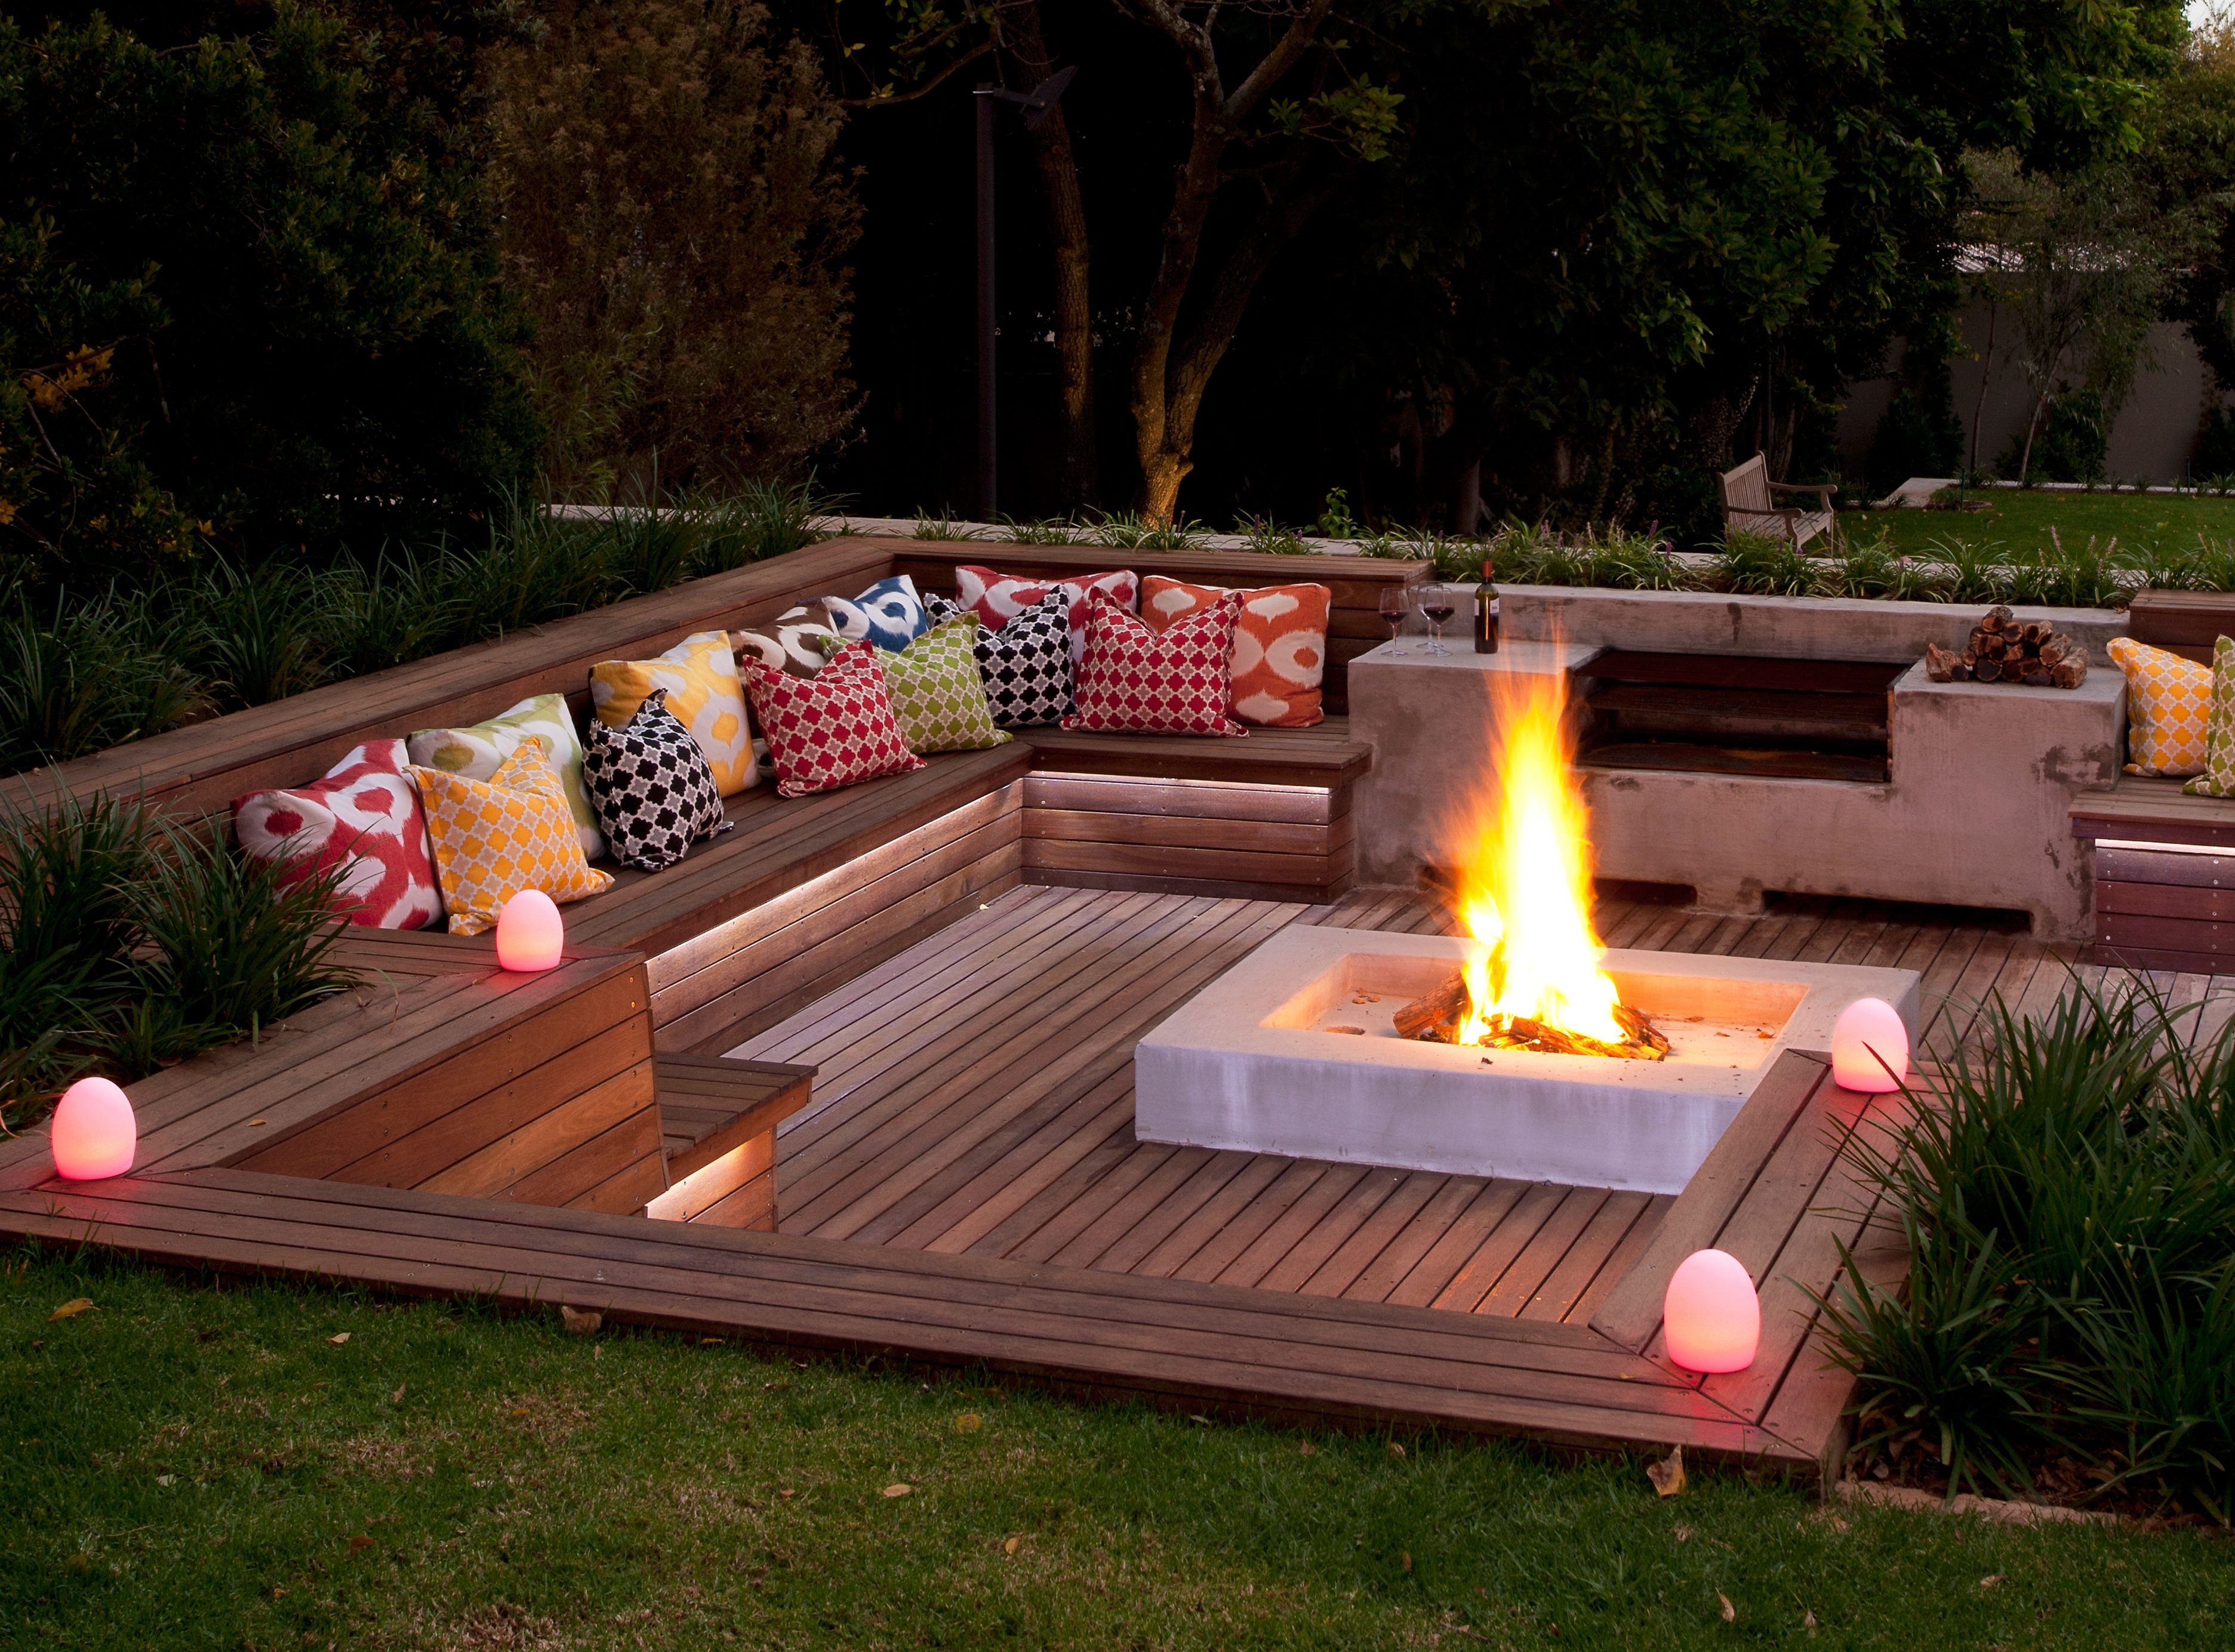 Designing a stylish boma is part of Backyard patio designs, Backyard, Backyard seating, Backyard fire, Backyard patio, Sunken patio - A roaring fire is a pleasure that needn't only be enjoyed indoors, which is why a boma is a fashionable to any garden